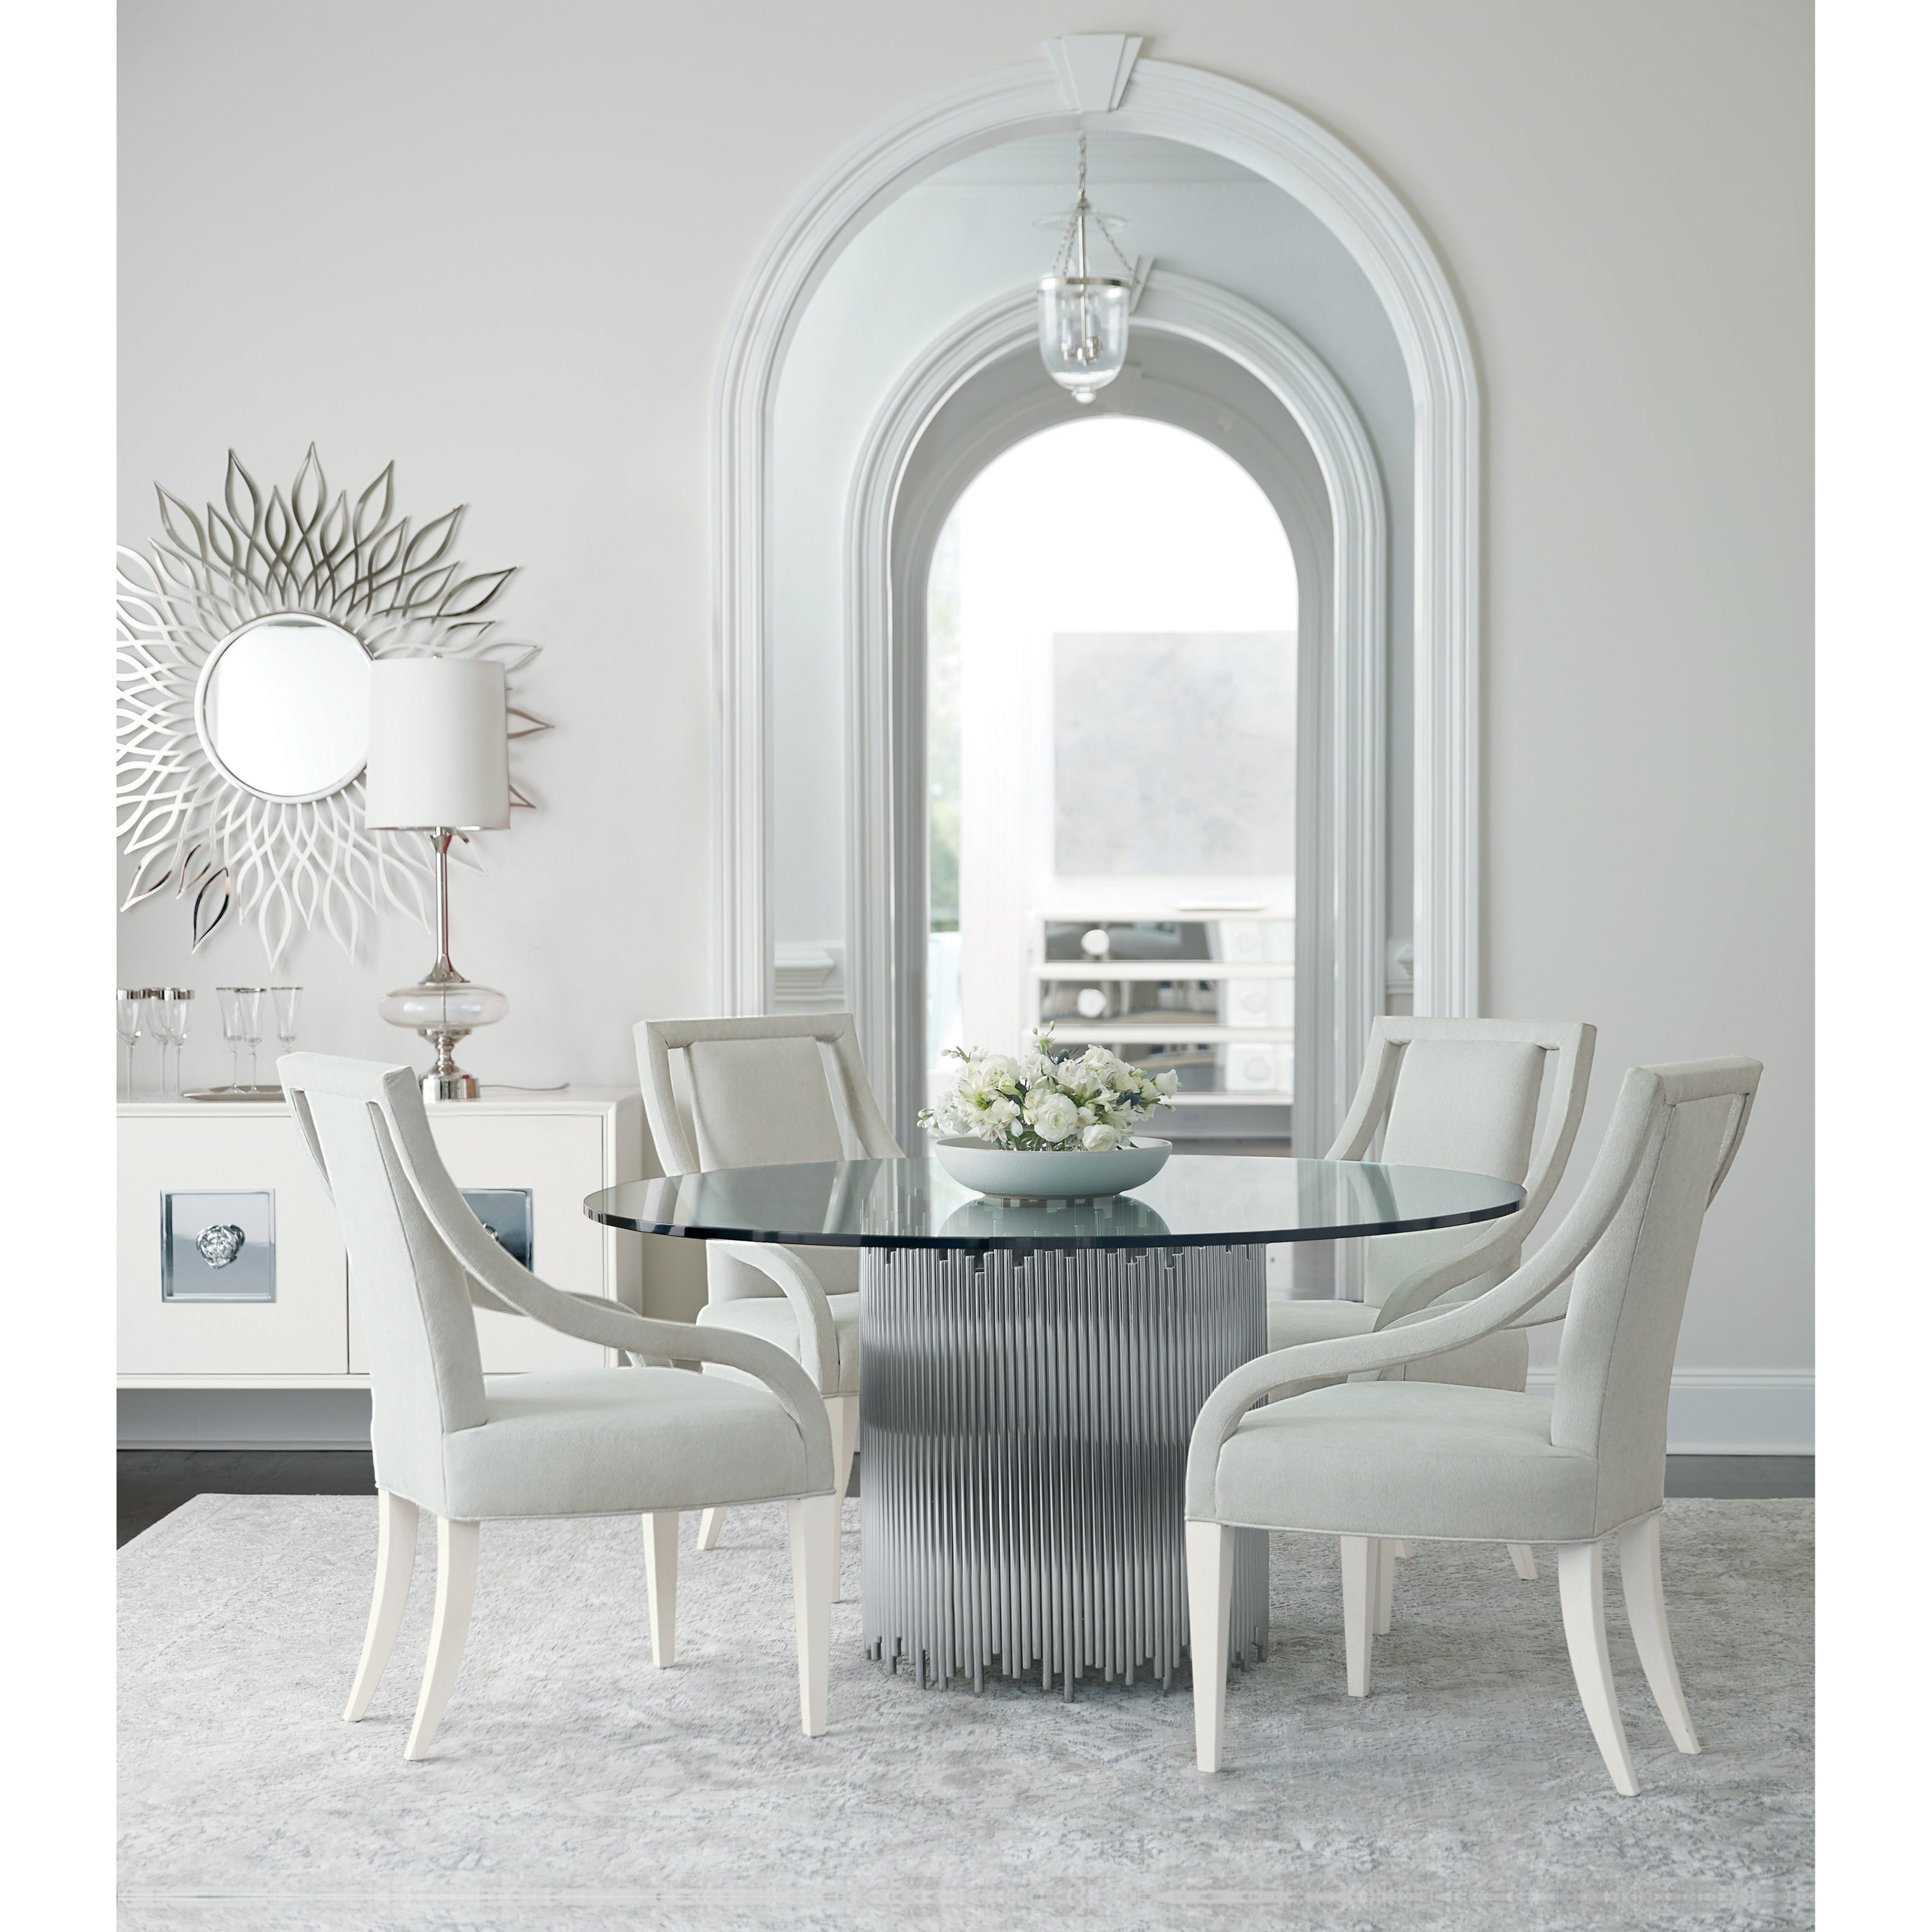 Calista 5 Piece Table and Chair Set by Bernhardt at Baer's Furniture